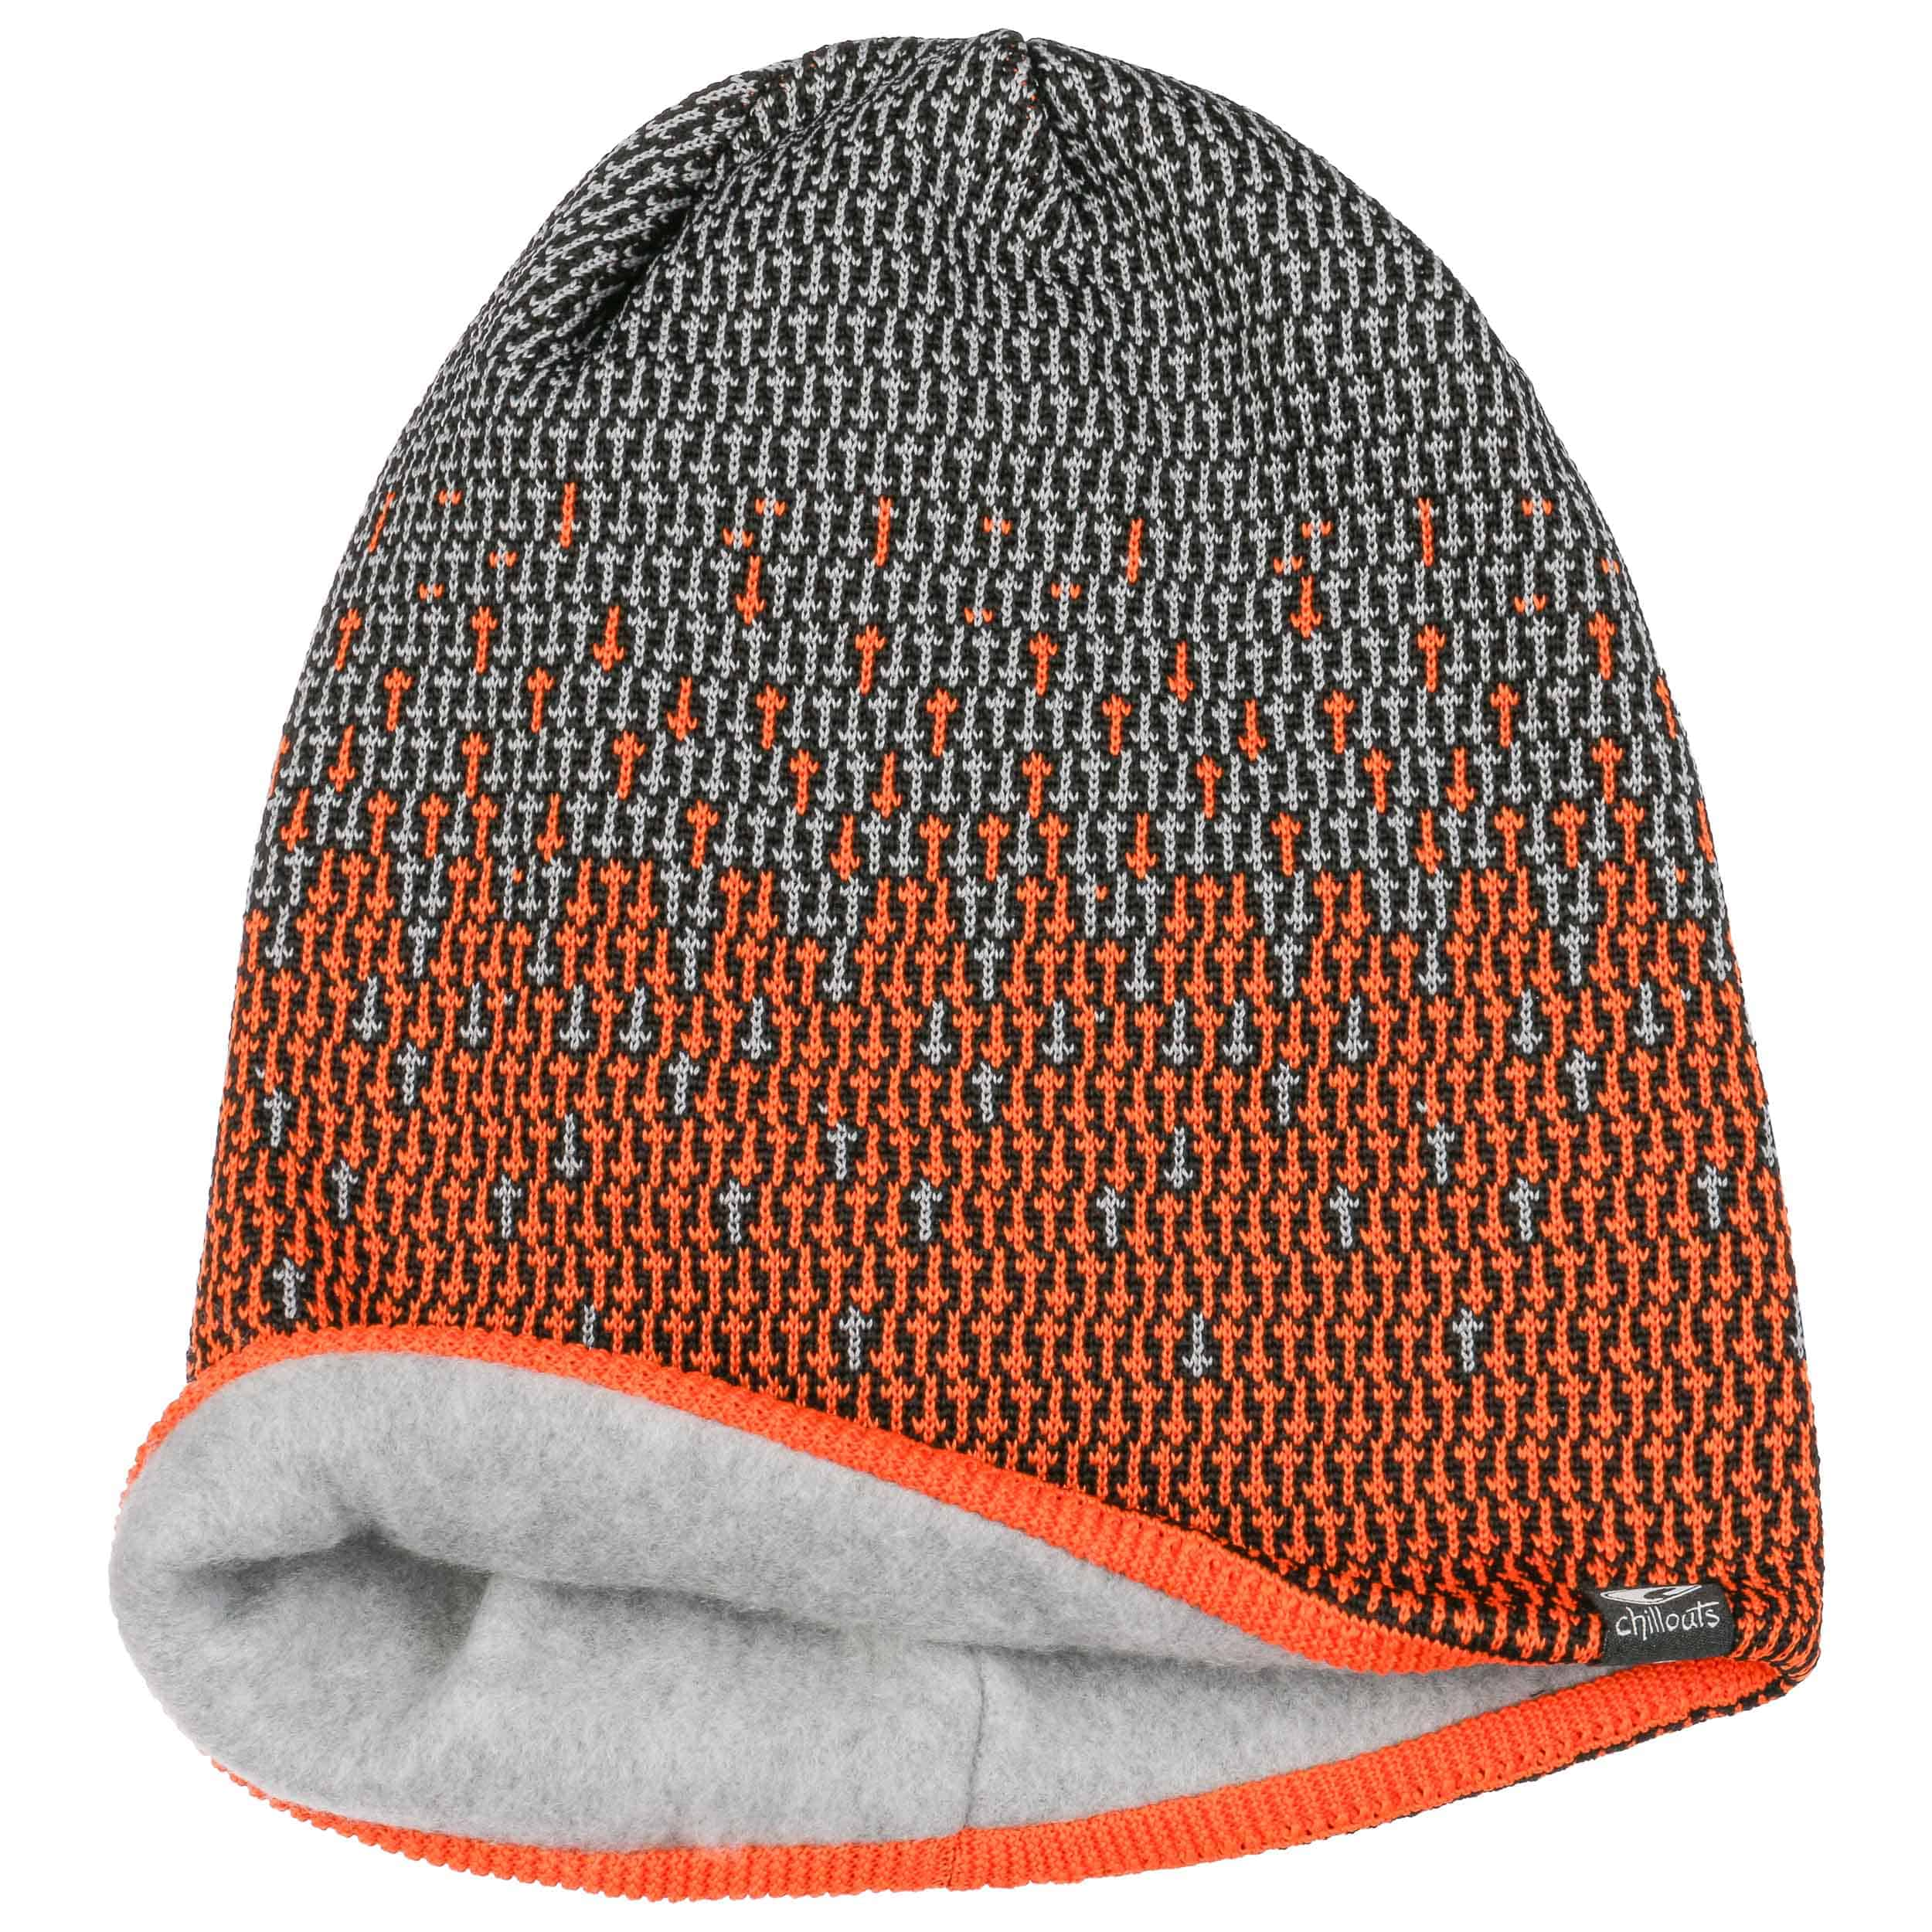 ... Quentin Sports Beanie Hat by Chillouts - orange 1 ... b34c3b157c59